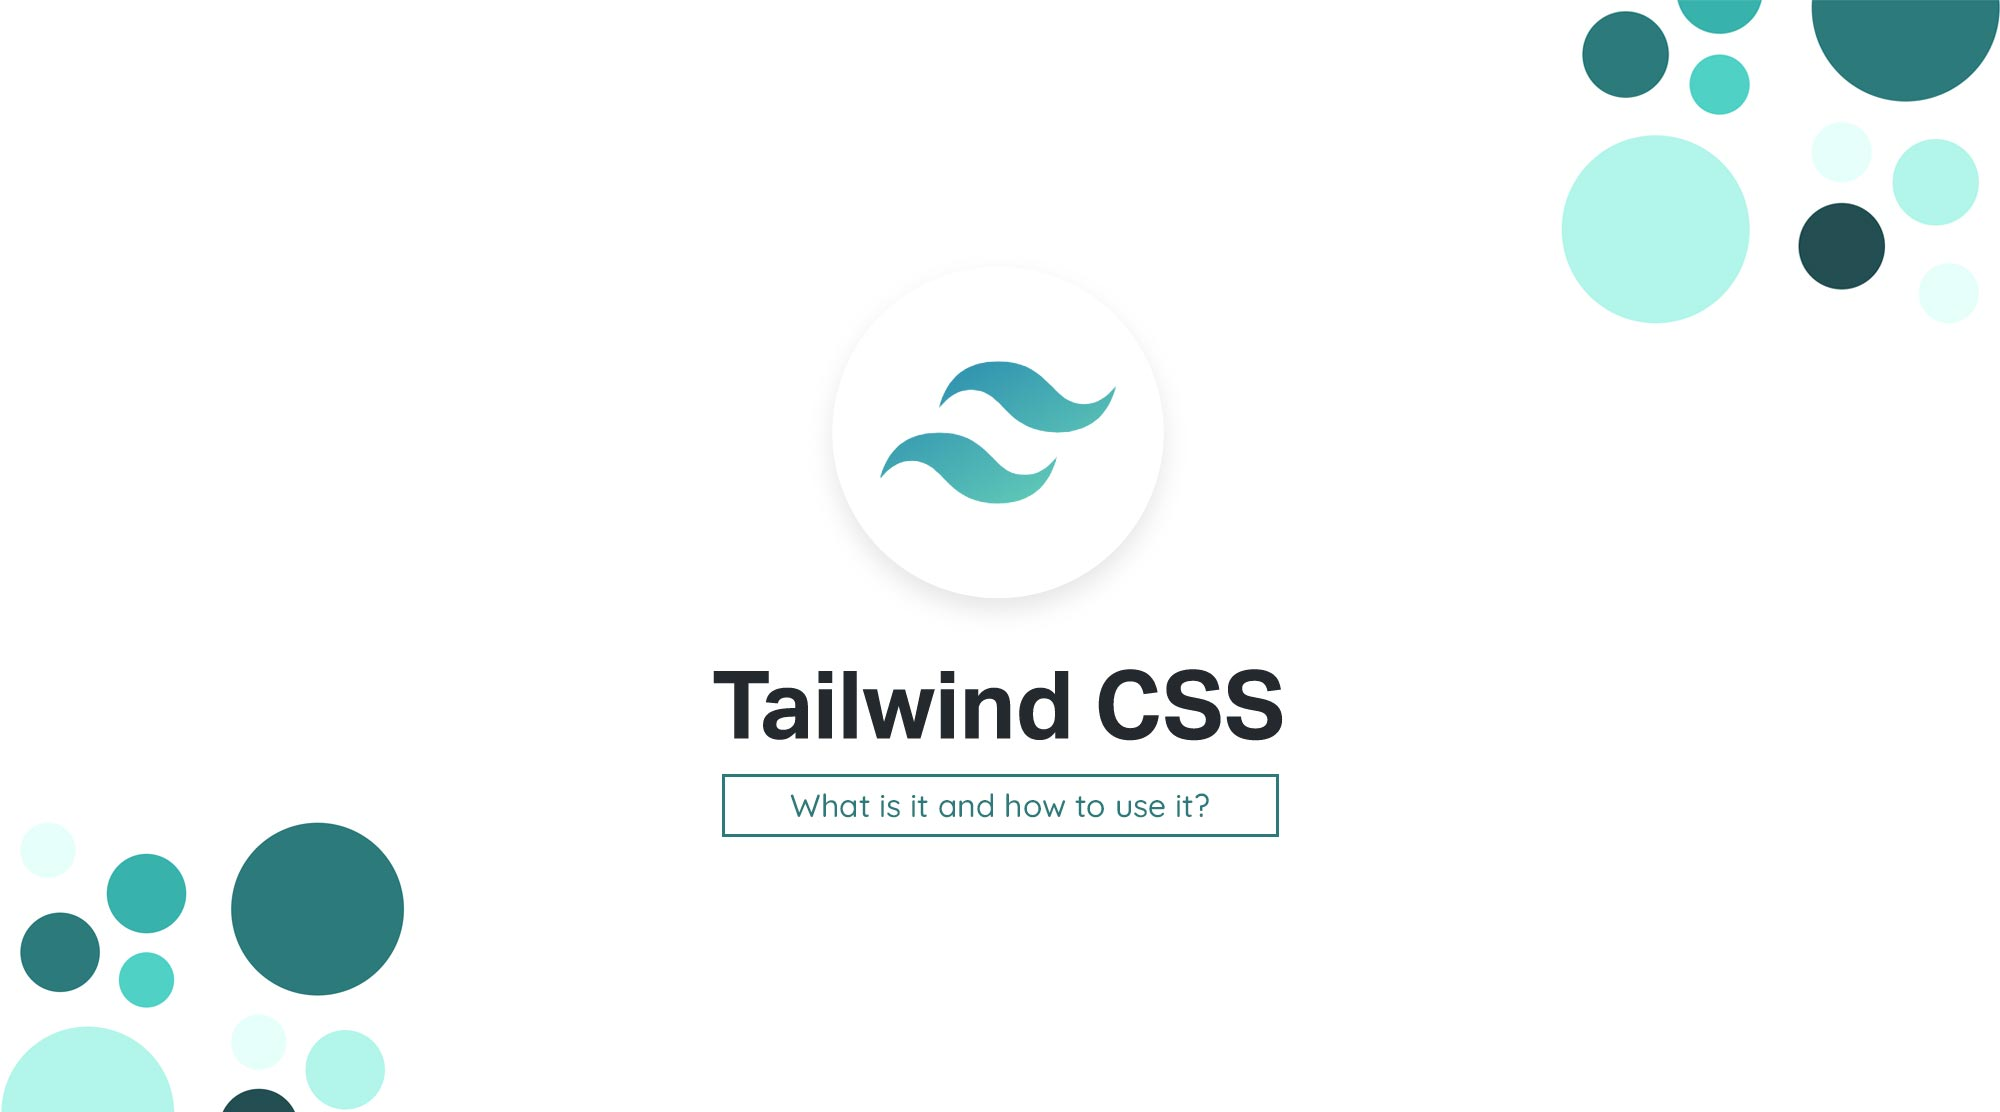 What is Tailwind CSS and how to use it?